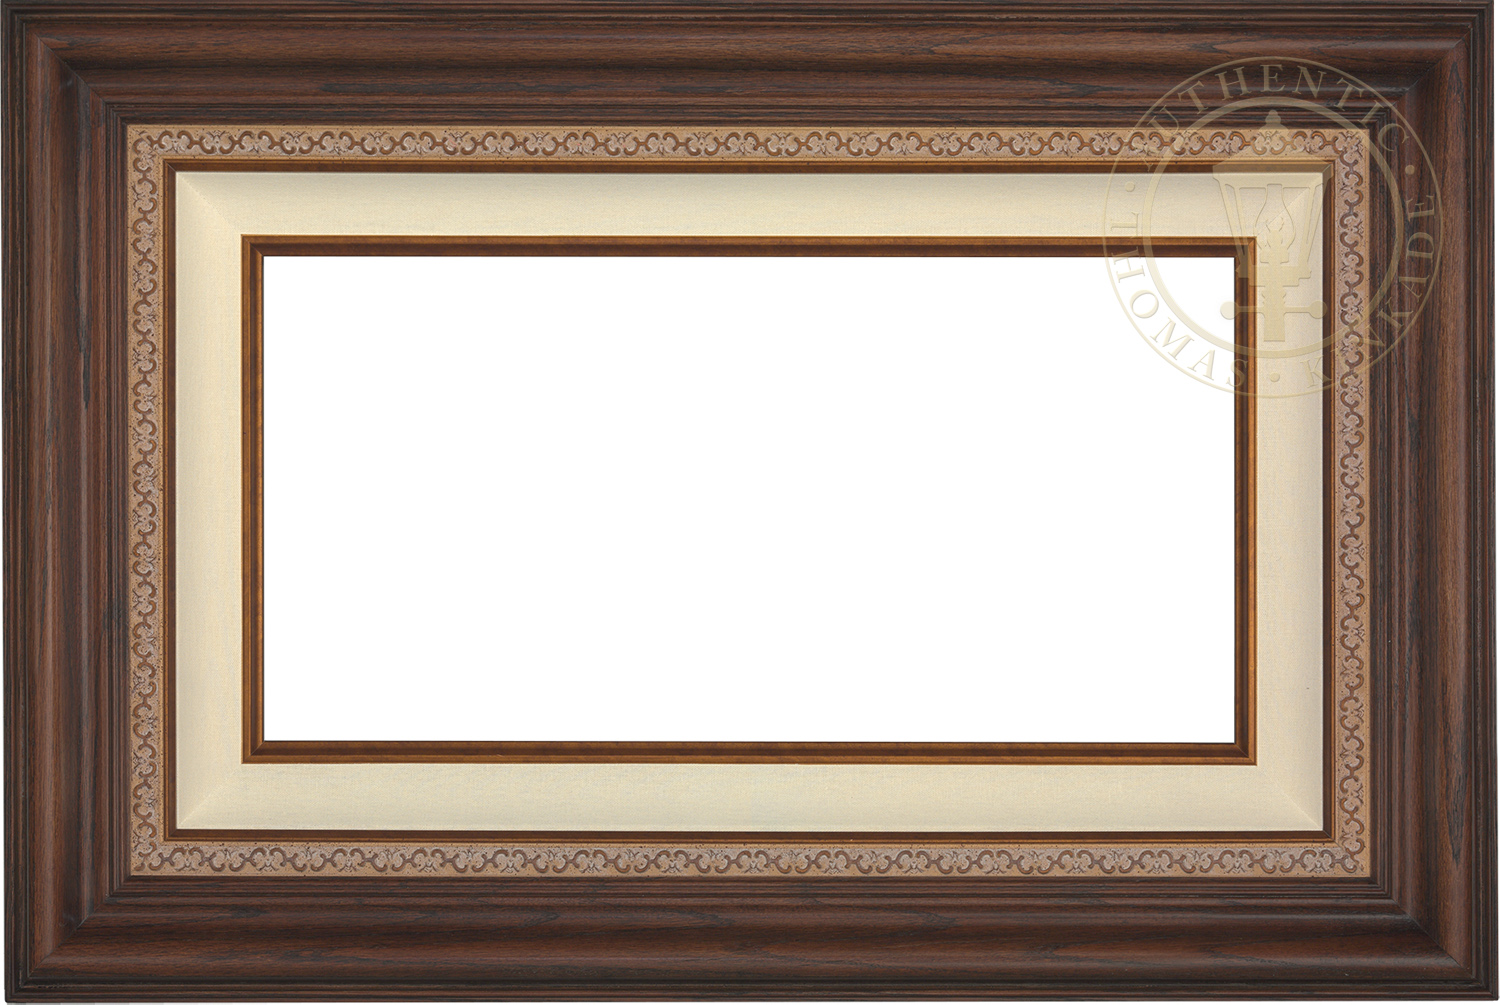 Dark Walnut – Limited Edition Canvas Frame | The Thomas Kinkade Company